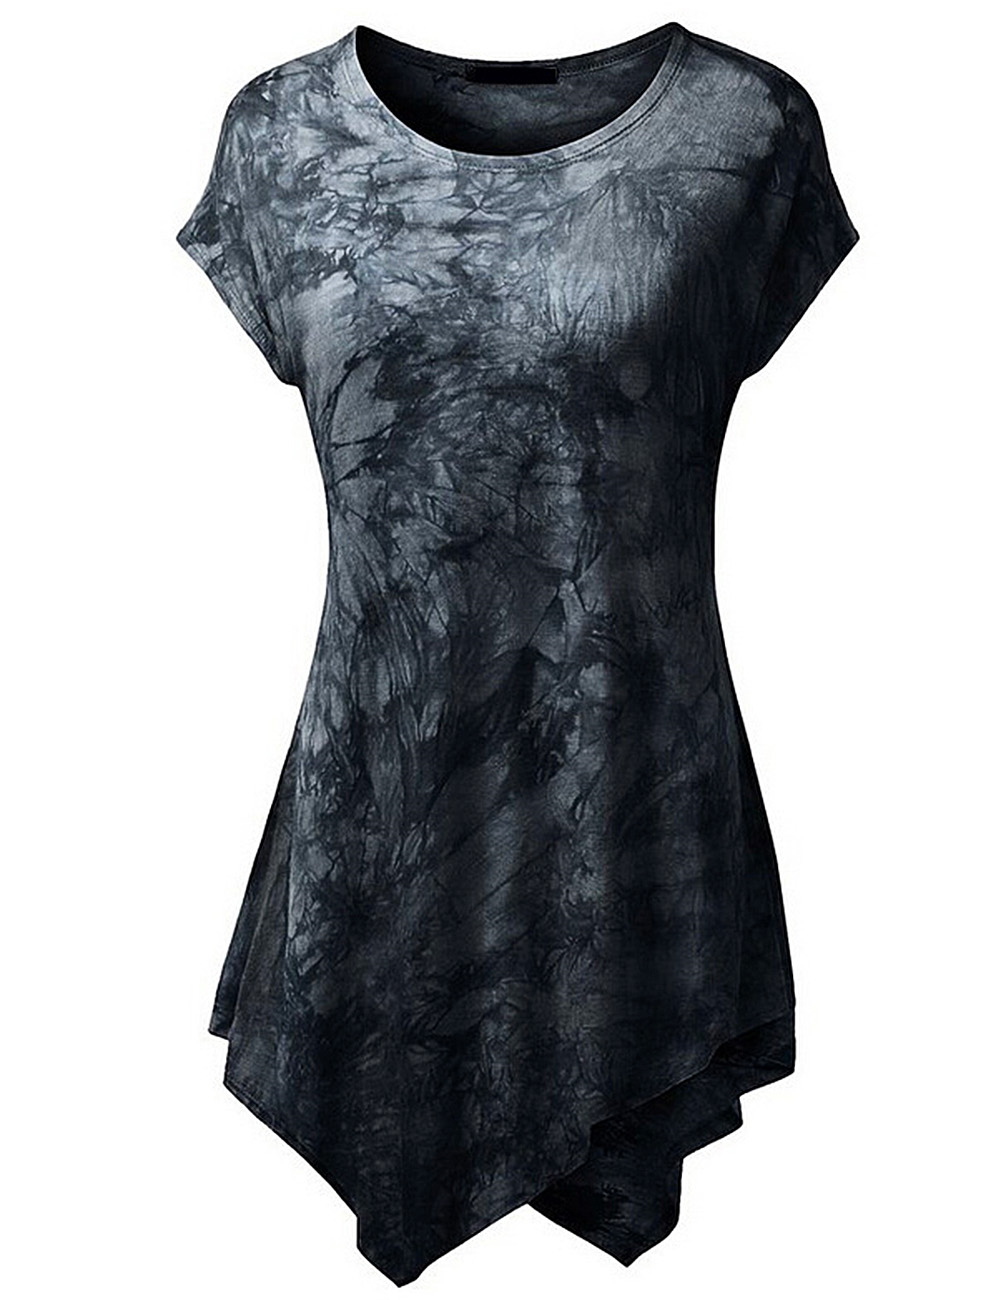 Women Short Sleeve U-Neck Tie-Dye Long Tunic Top Irregular Hem T-shirt Black S